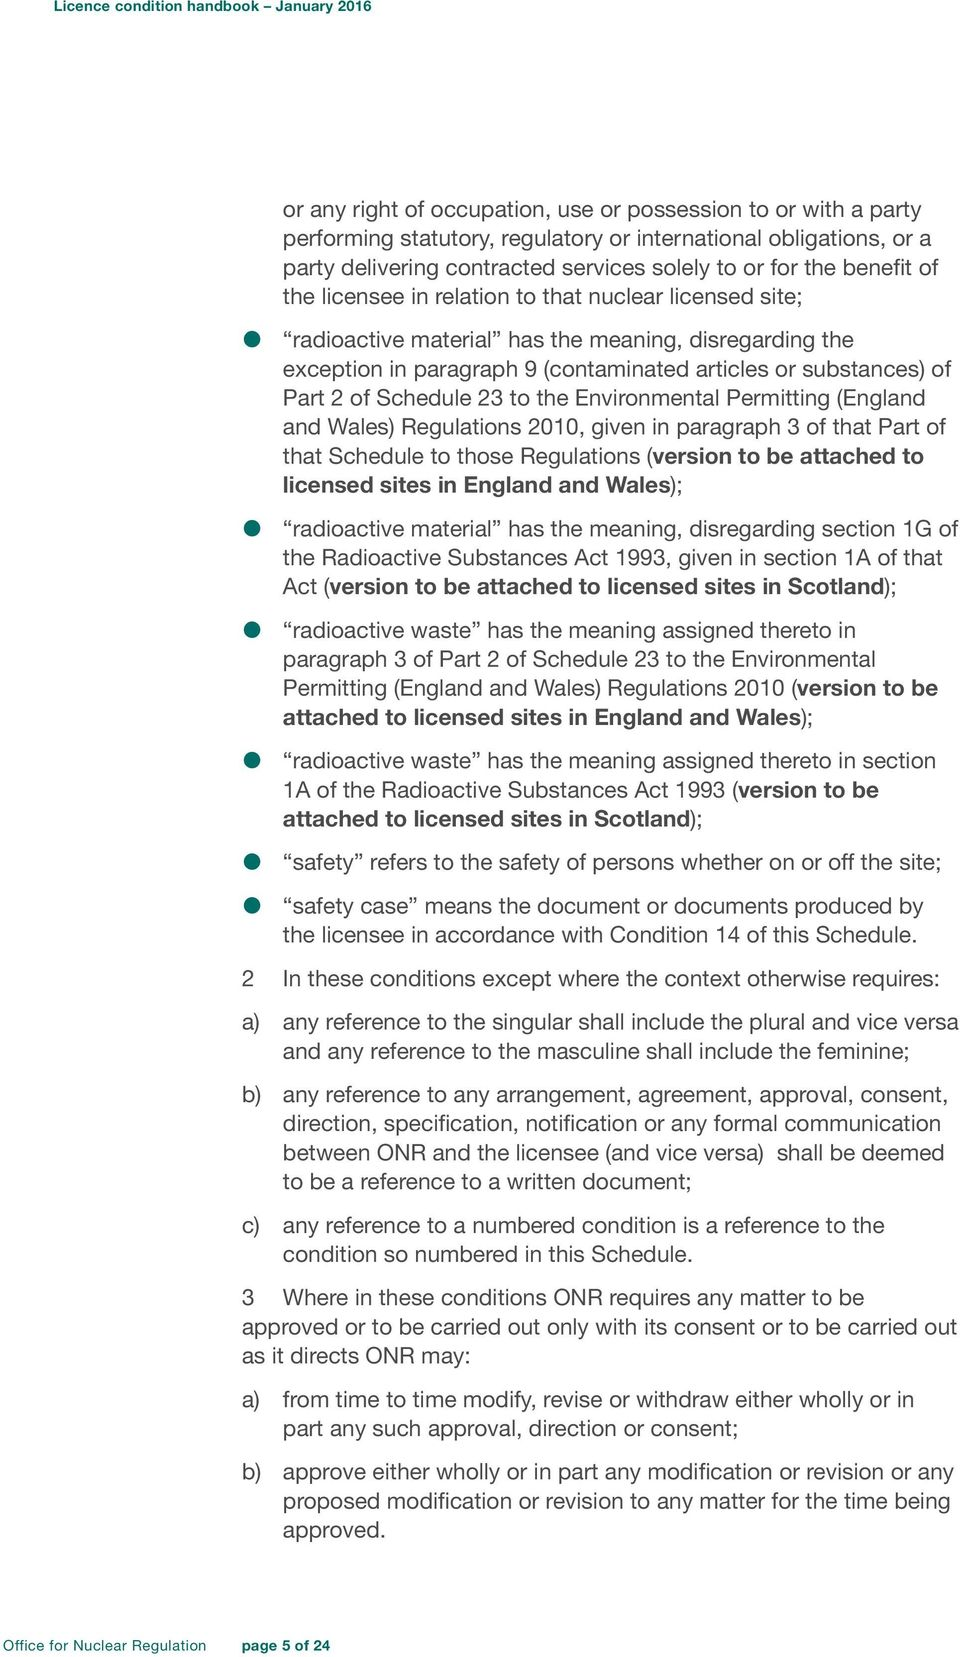 23 to the Environmental Permitting (England and Wales) Regulations 2010, given in paragraph 3 of that Part of that Schedule to those Regulations (version to be attached to licensed sites in England